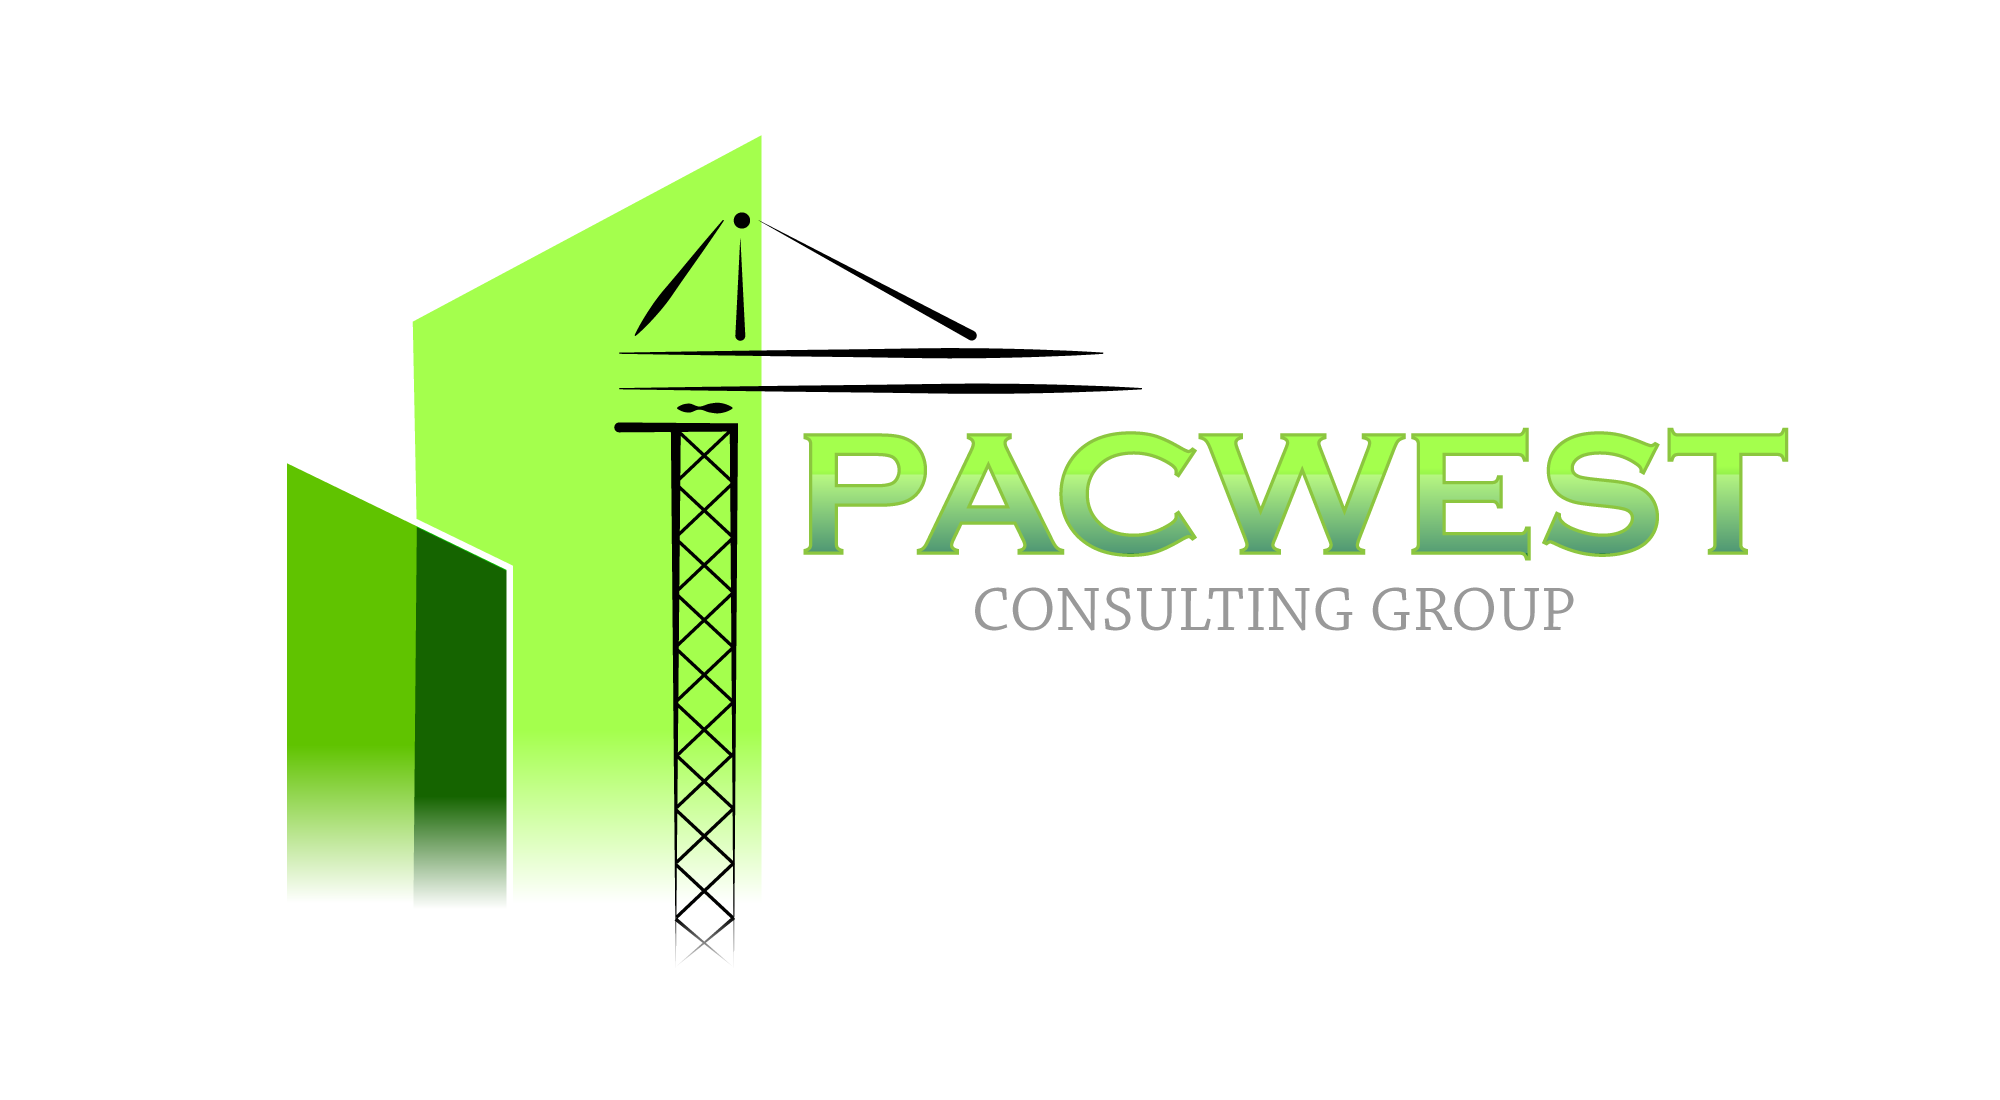 Logo Design by amberleefaint - Entry No. 53 in the Logo Design Contest Imaginative Logo Design for Pacwest Consulting Group.